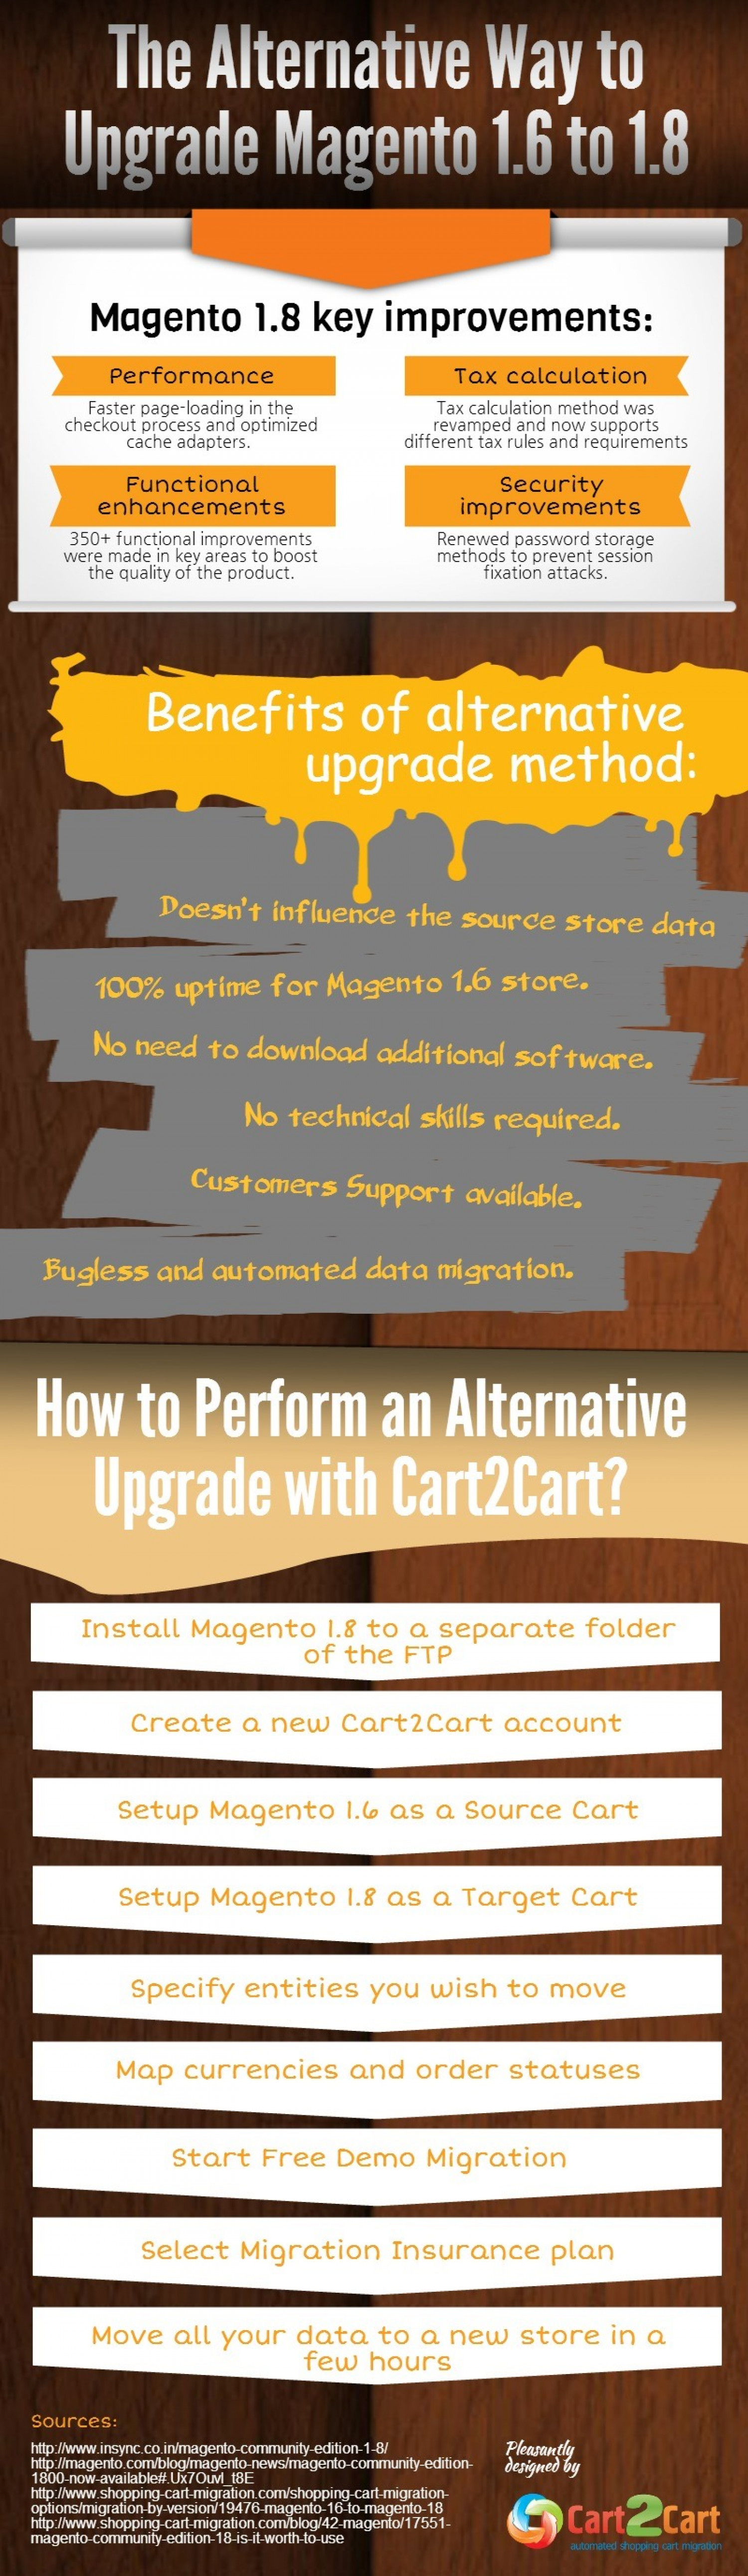 The Alternative Way to Upgrade Magento 1.6 to 1.8 Infographic